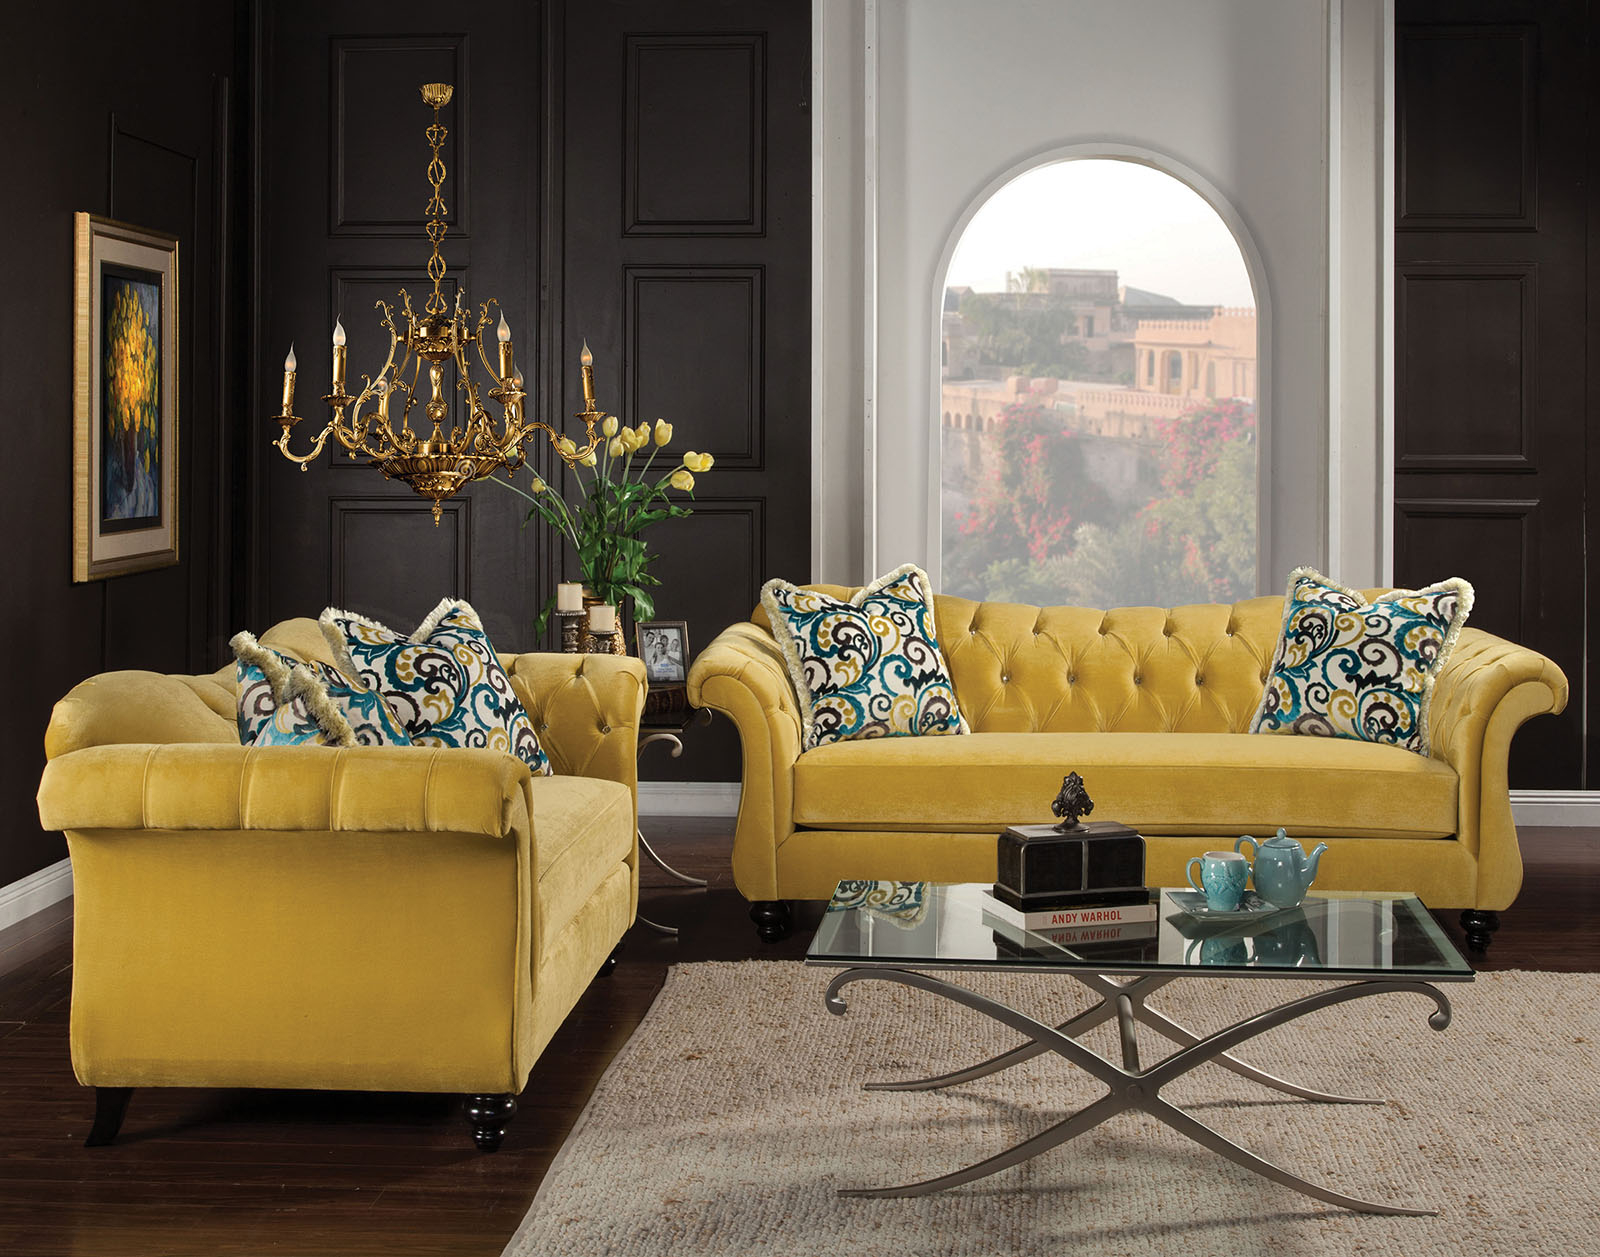 Furniture Of America Antoinette Royal Yellow Living Room Set inside Yellow Living Room Set